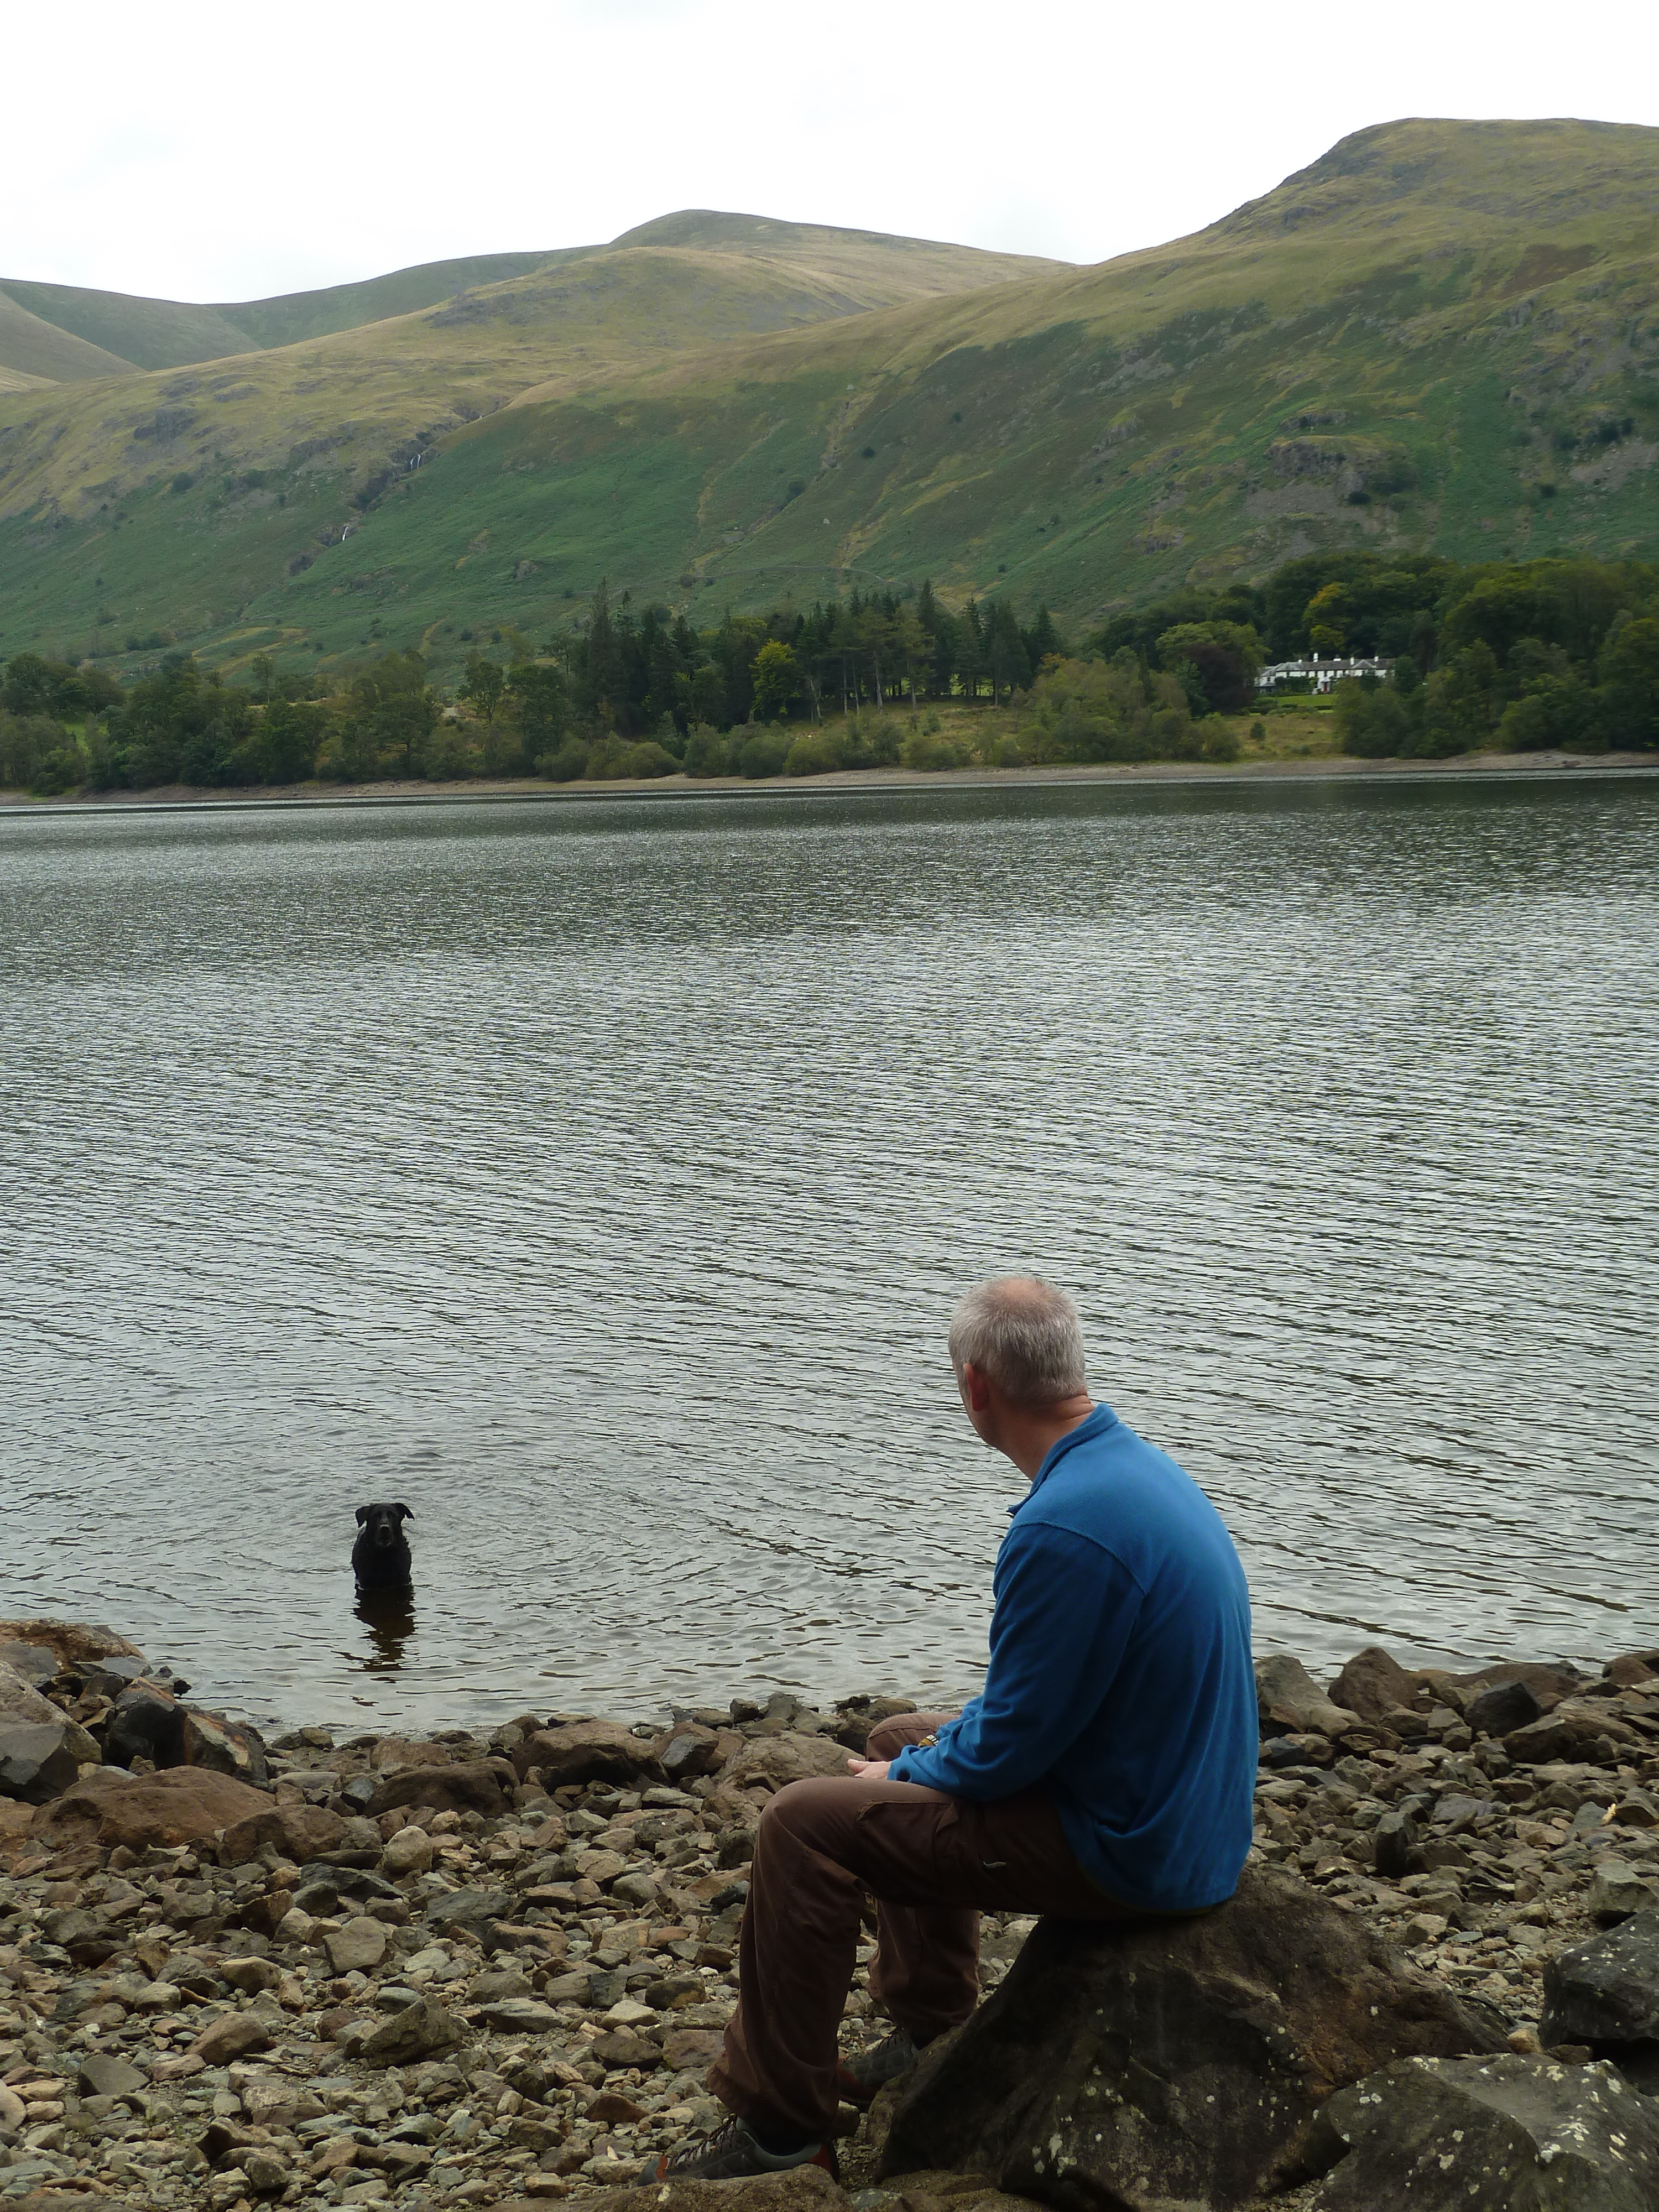 Thirlmere is a reservoir serving the city of Manchester. Helvellyn peak looks over the west side of the lake.